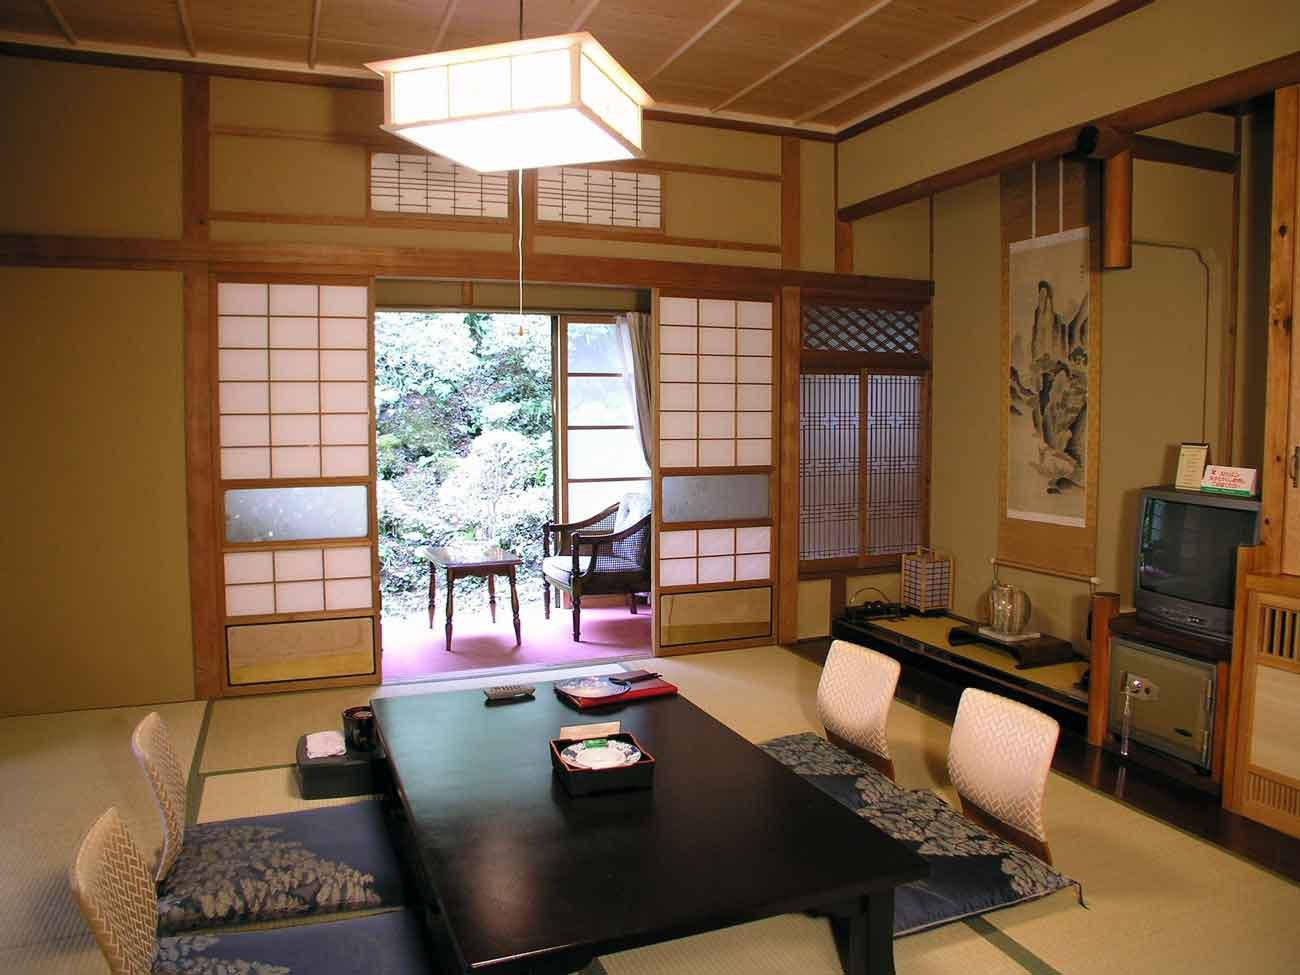 Image of: Traditional Japanese House Layout